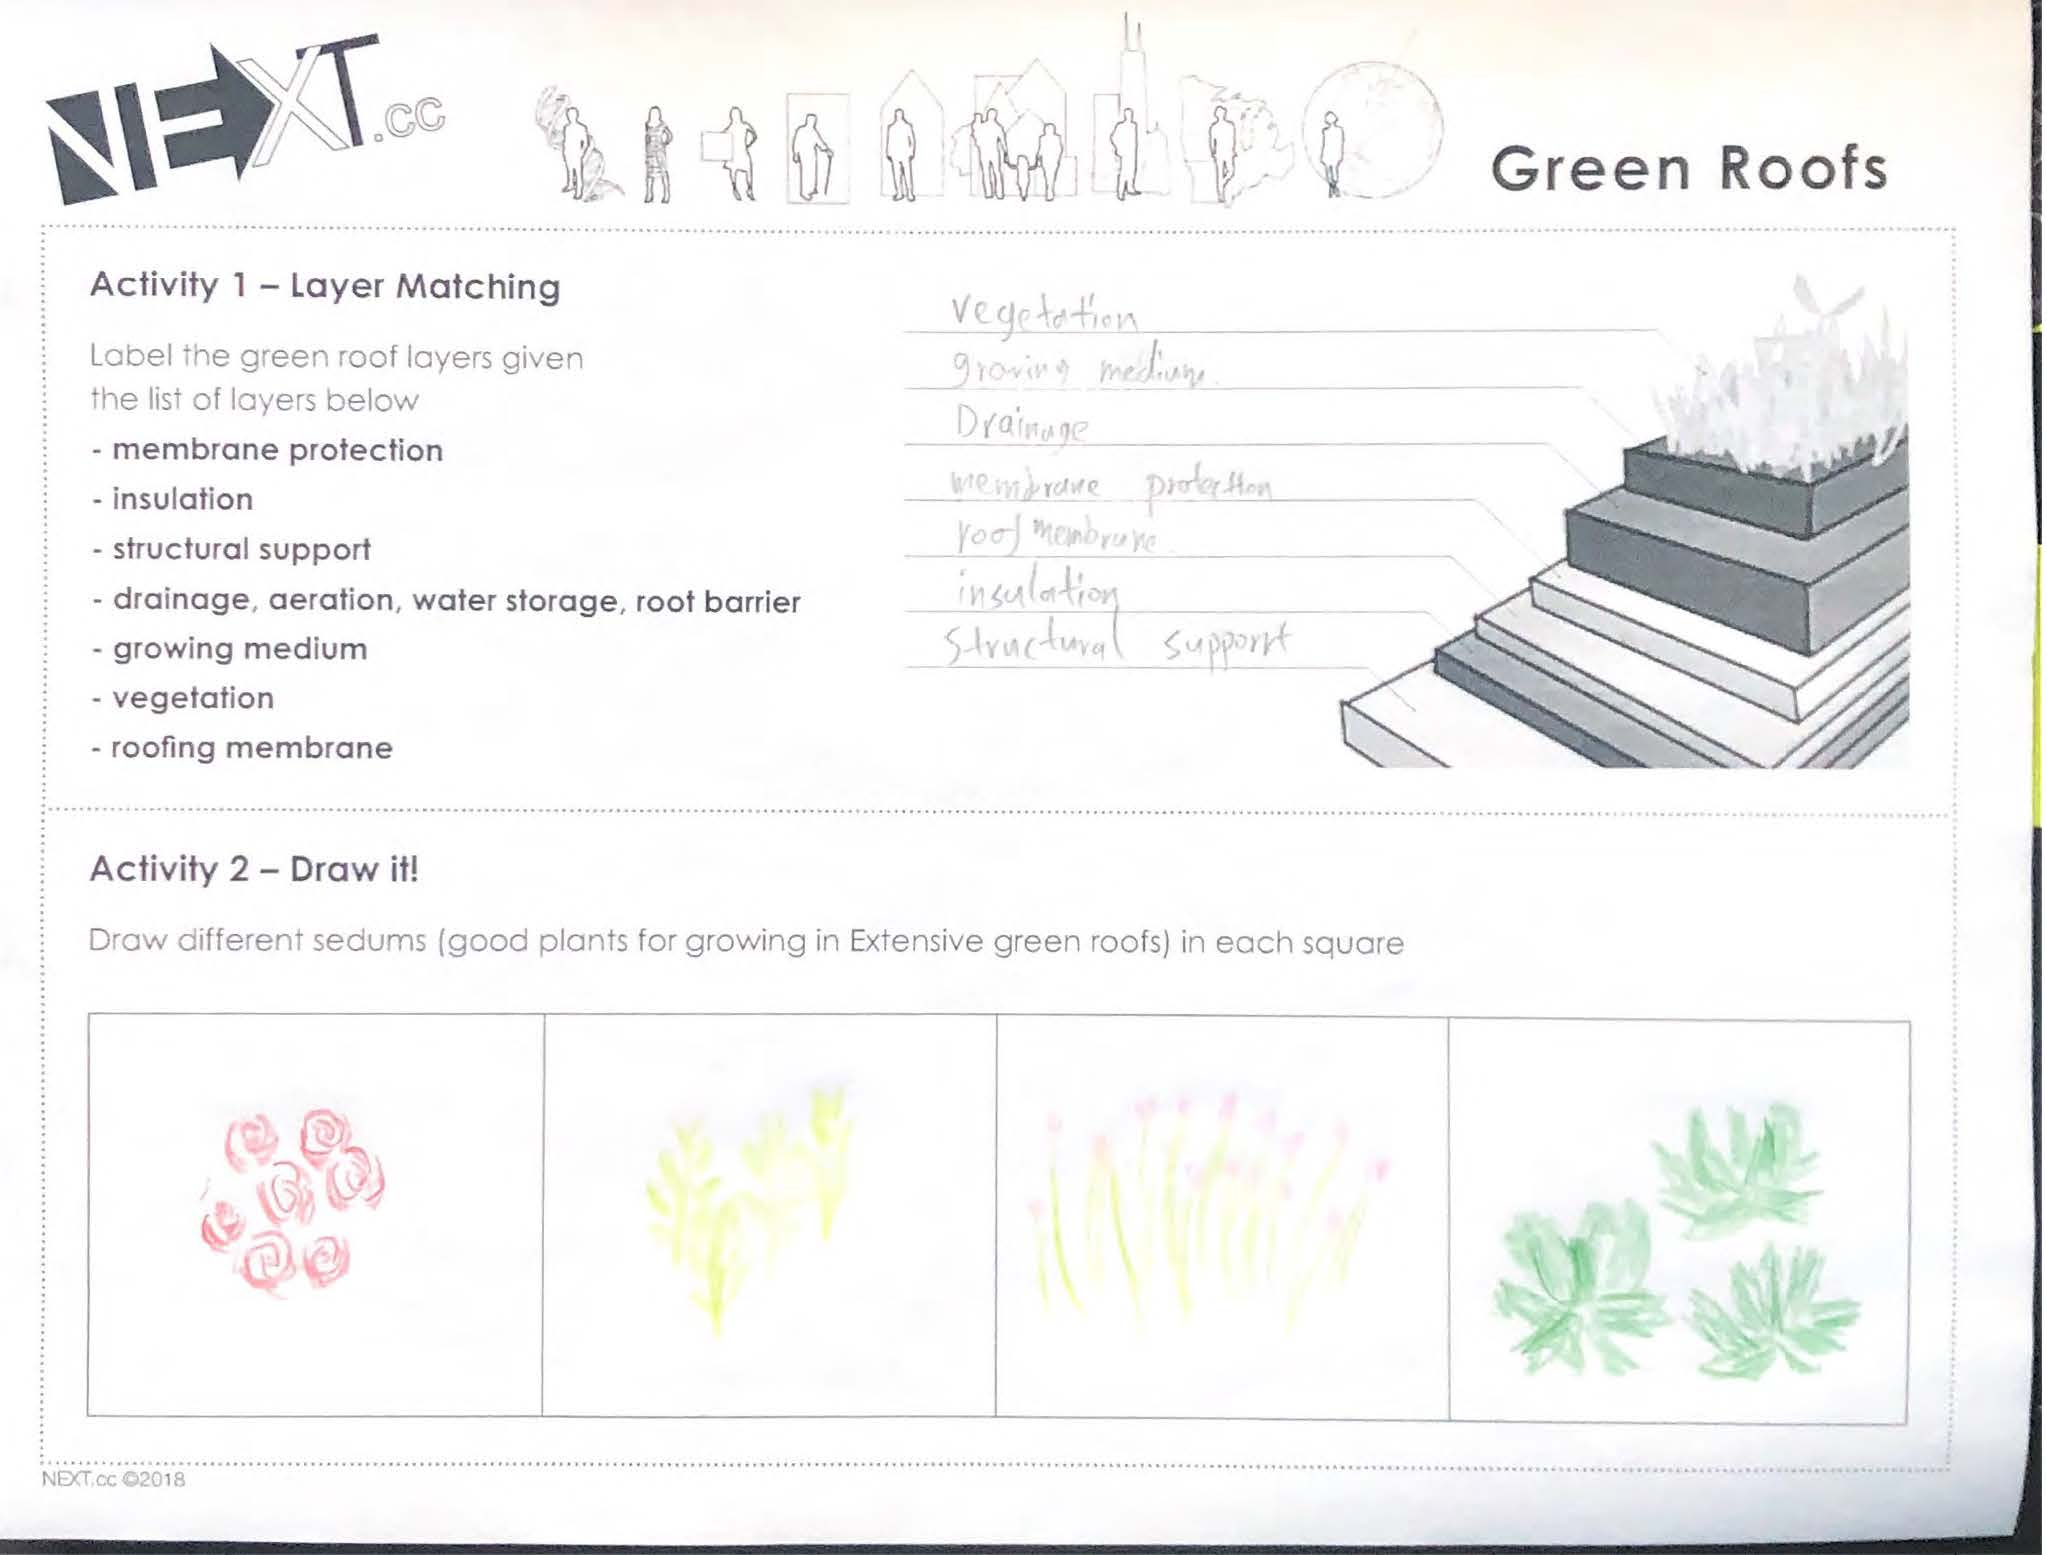 Images 1611014583 greenroof a1 2 xinleichen